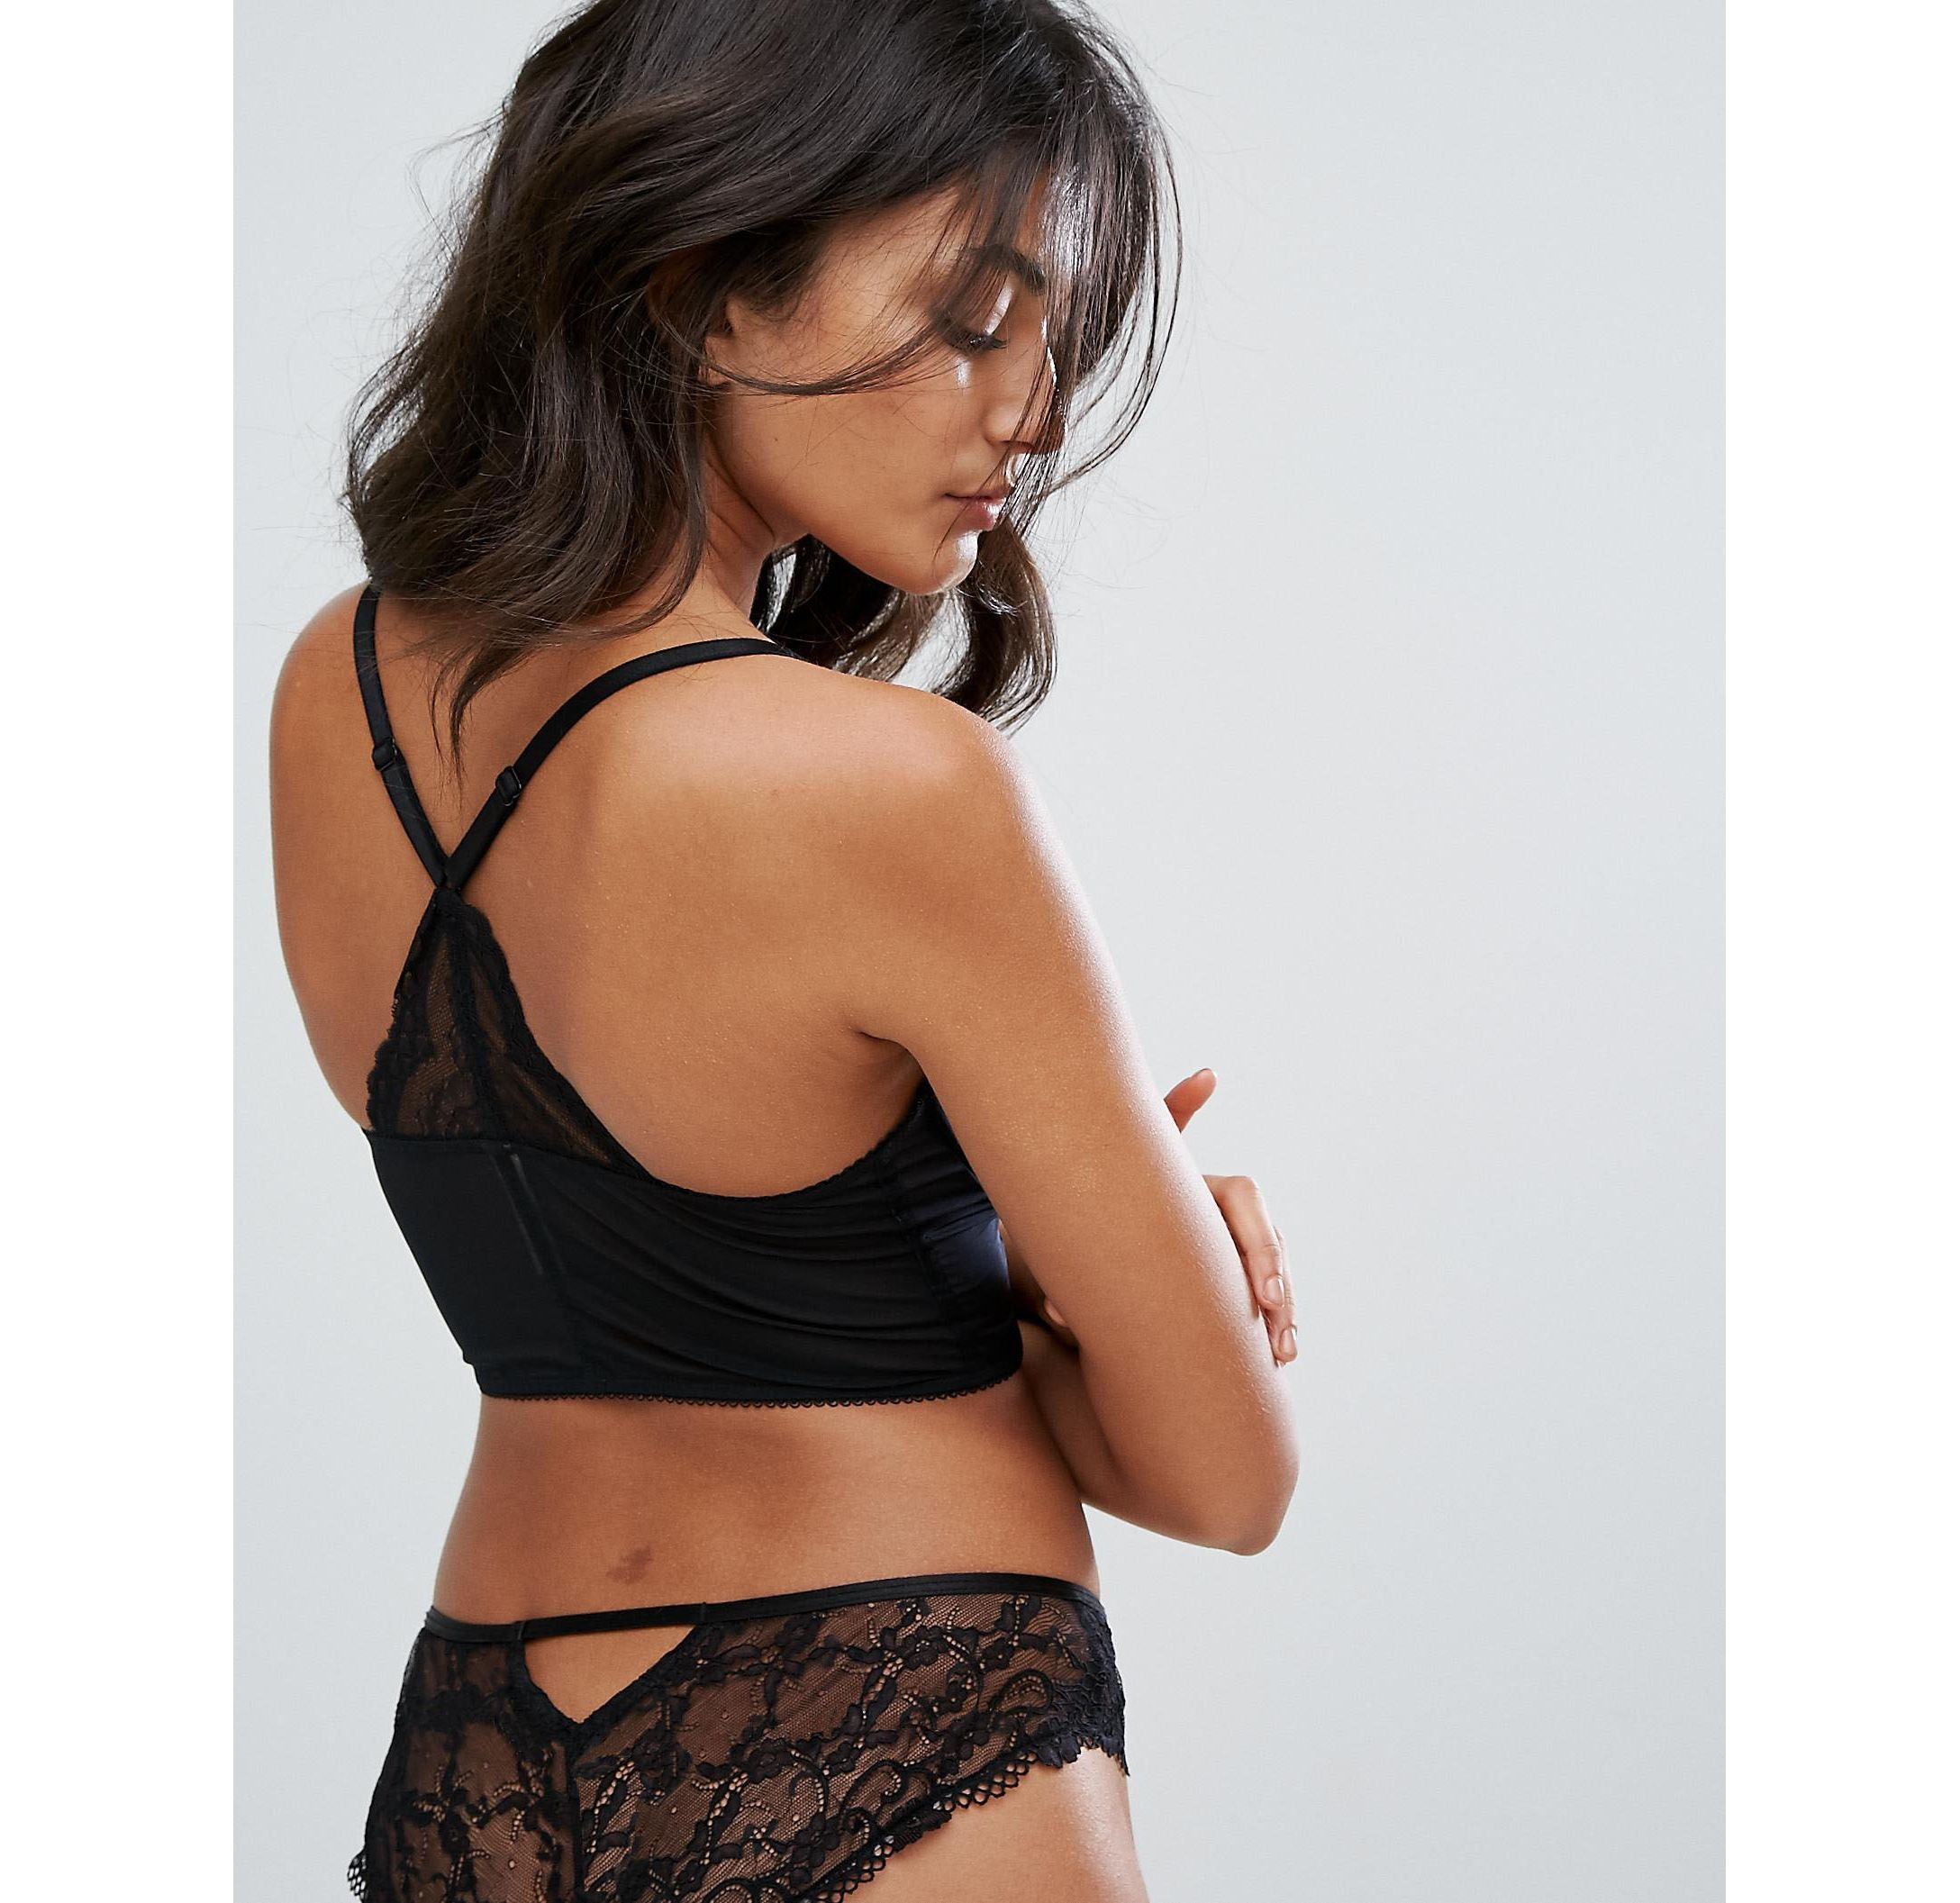 ★ASOSセレクト★Gossard スーパーboost Lace Deep V Bralette